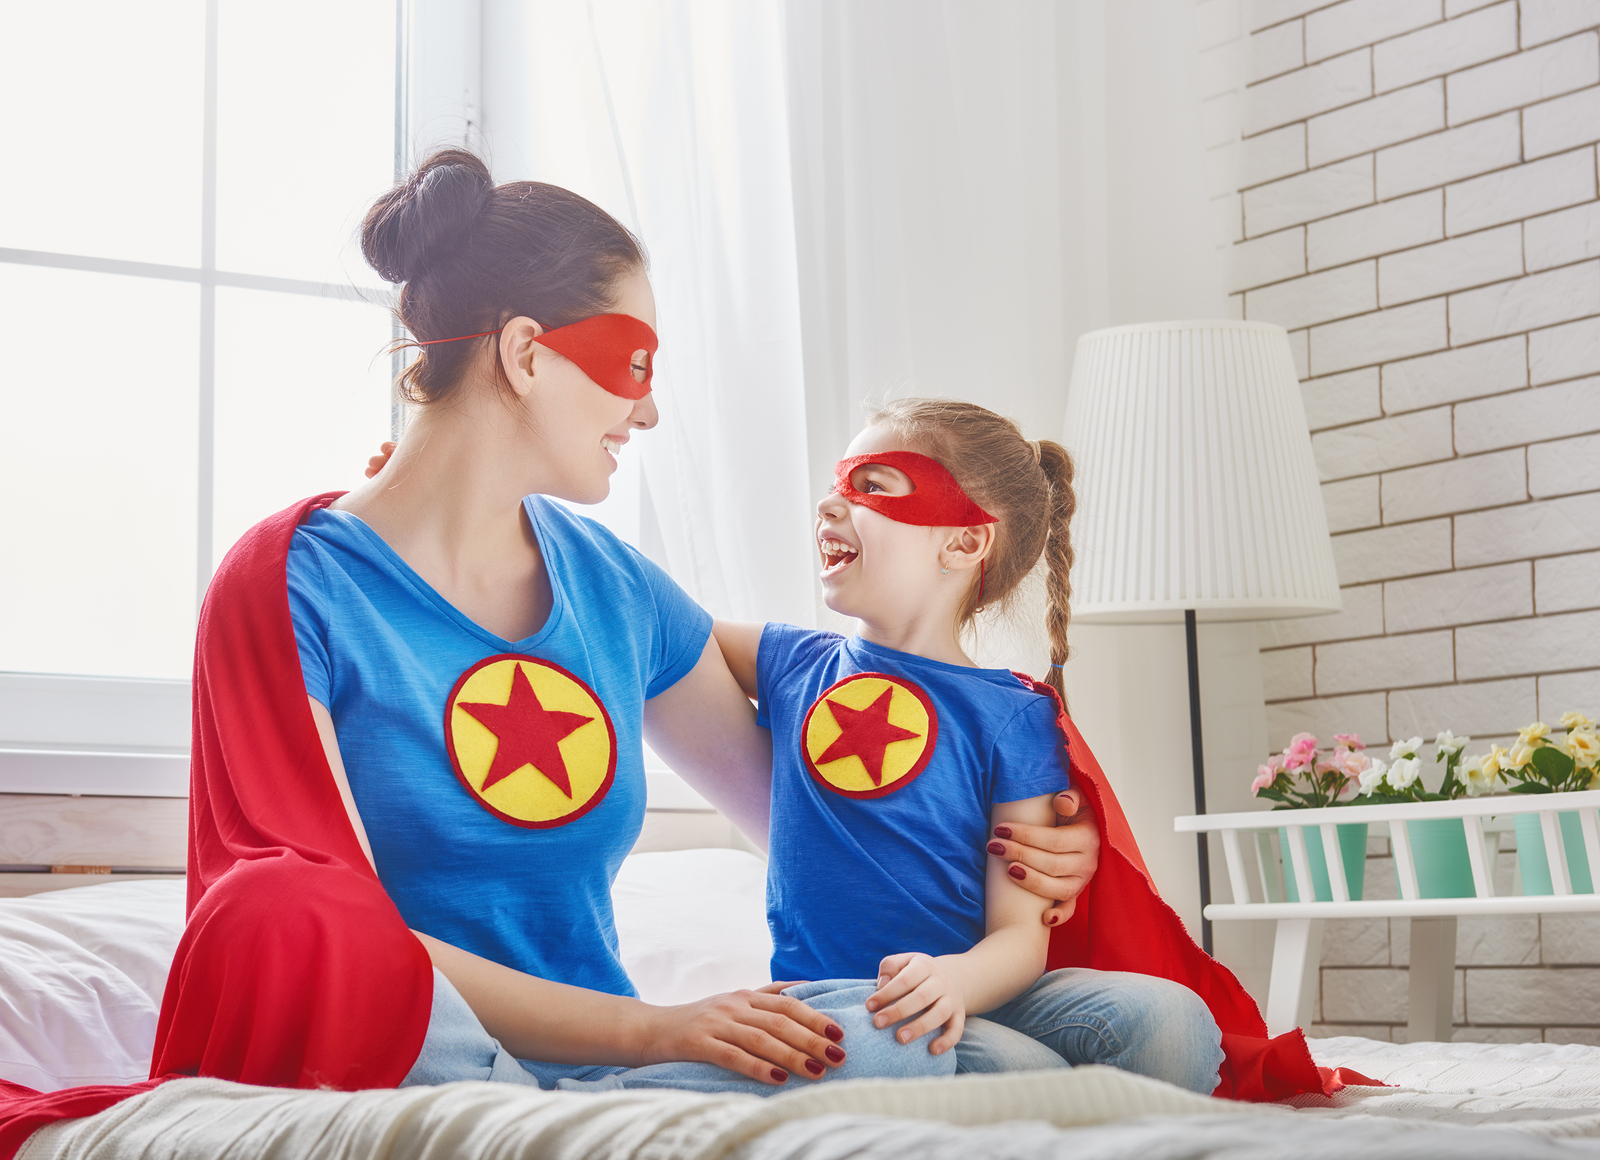 Mother and her child playing together. Girl and mom in Superhero